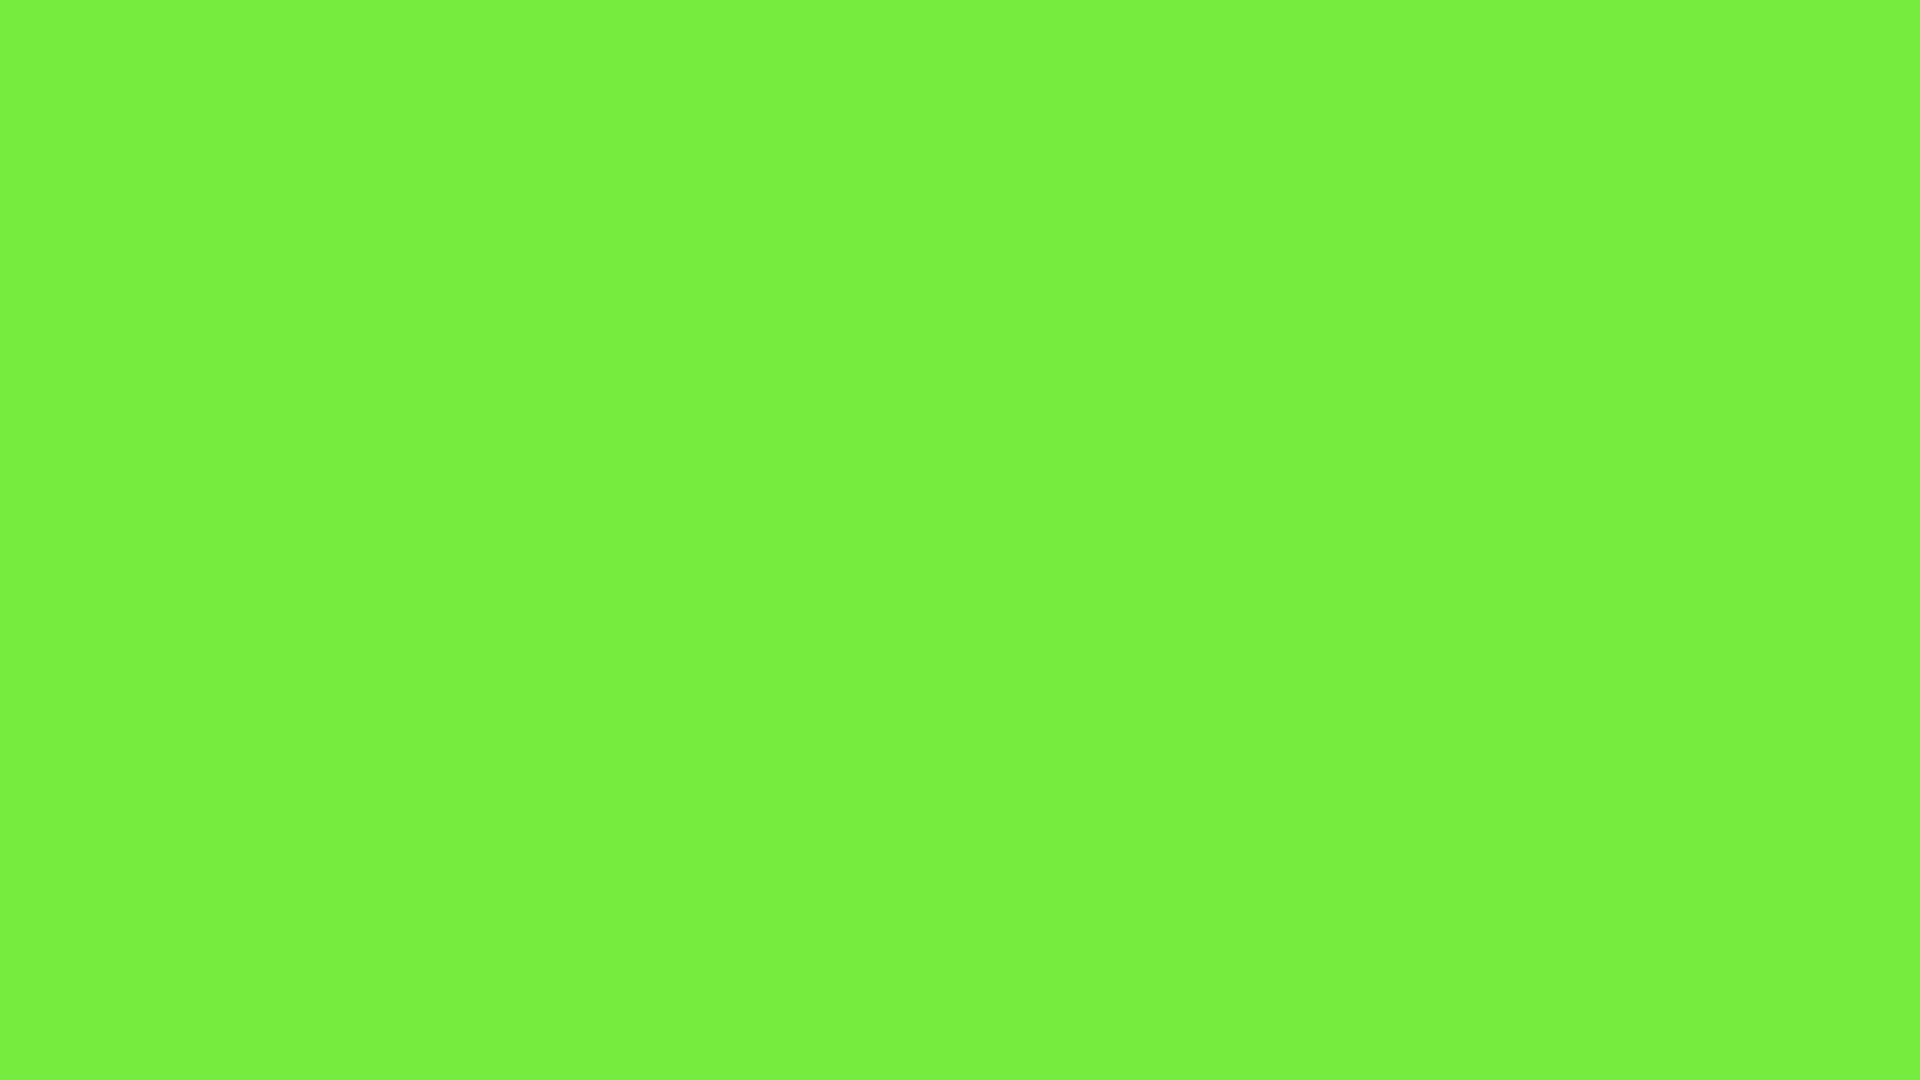 Lime Green Wallpaper - WallpaperSafari